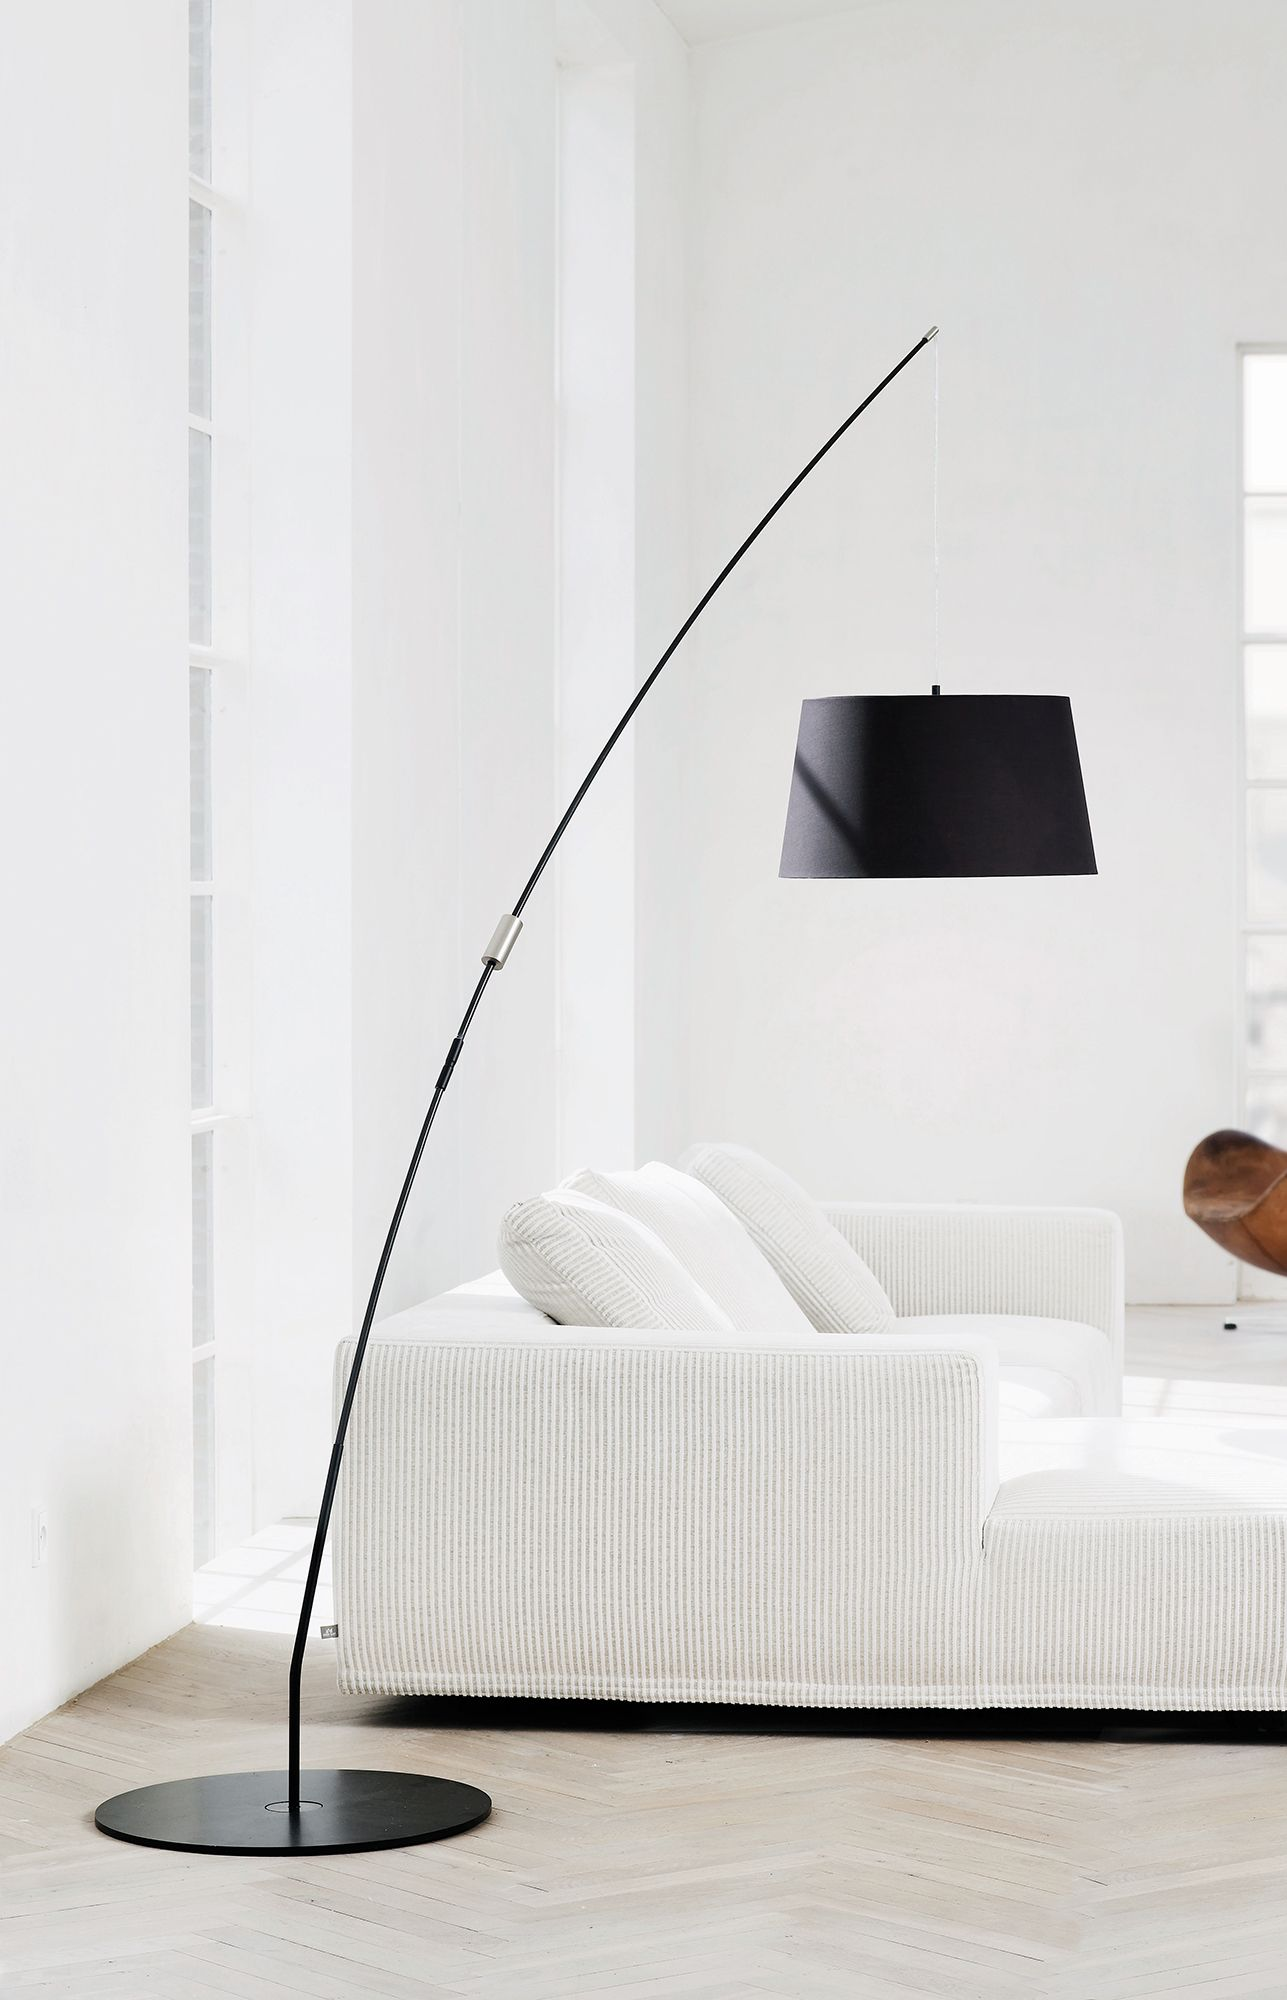 bait lampe lamp frandsen design danish design 365 north henrik pedersen lampes. Black Bedroom Furniture Sets. Home Design Ideas